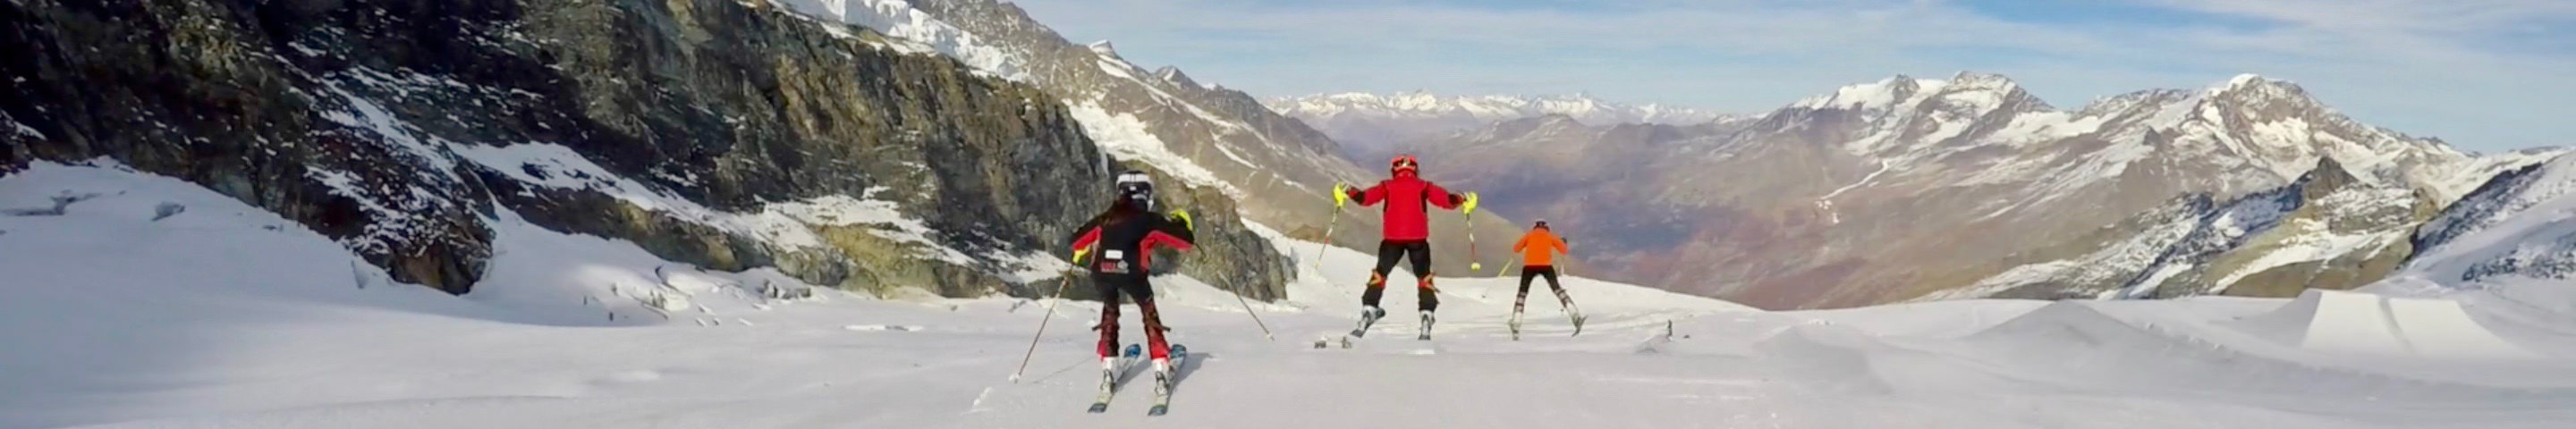 October ski racing camps saas-fee glacier